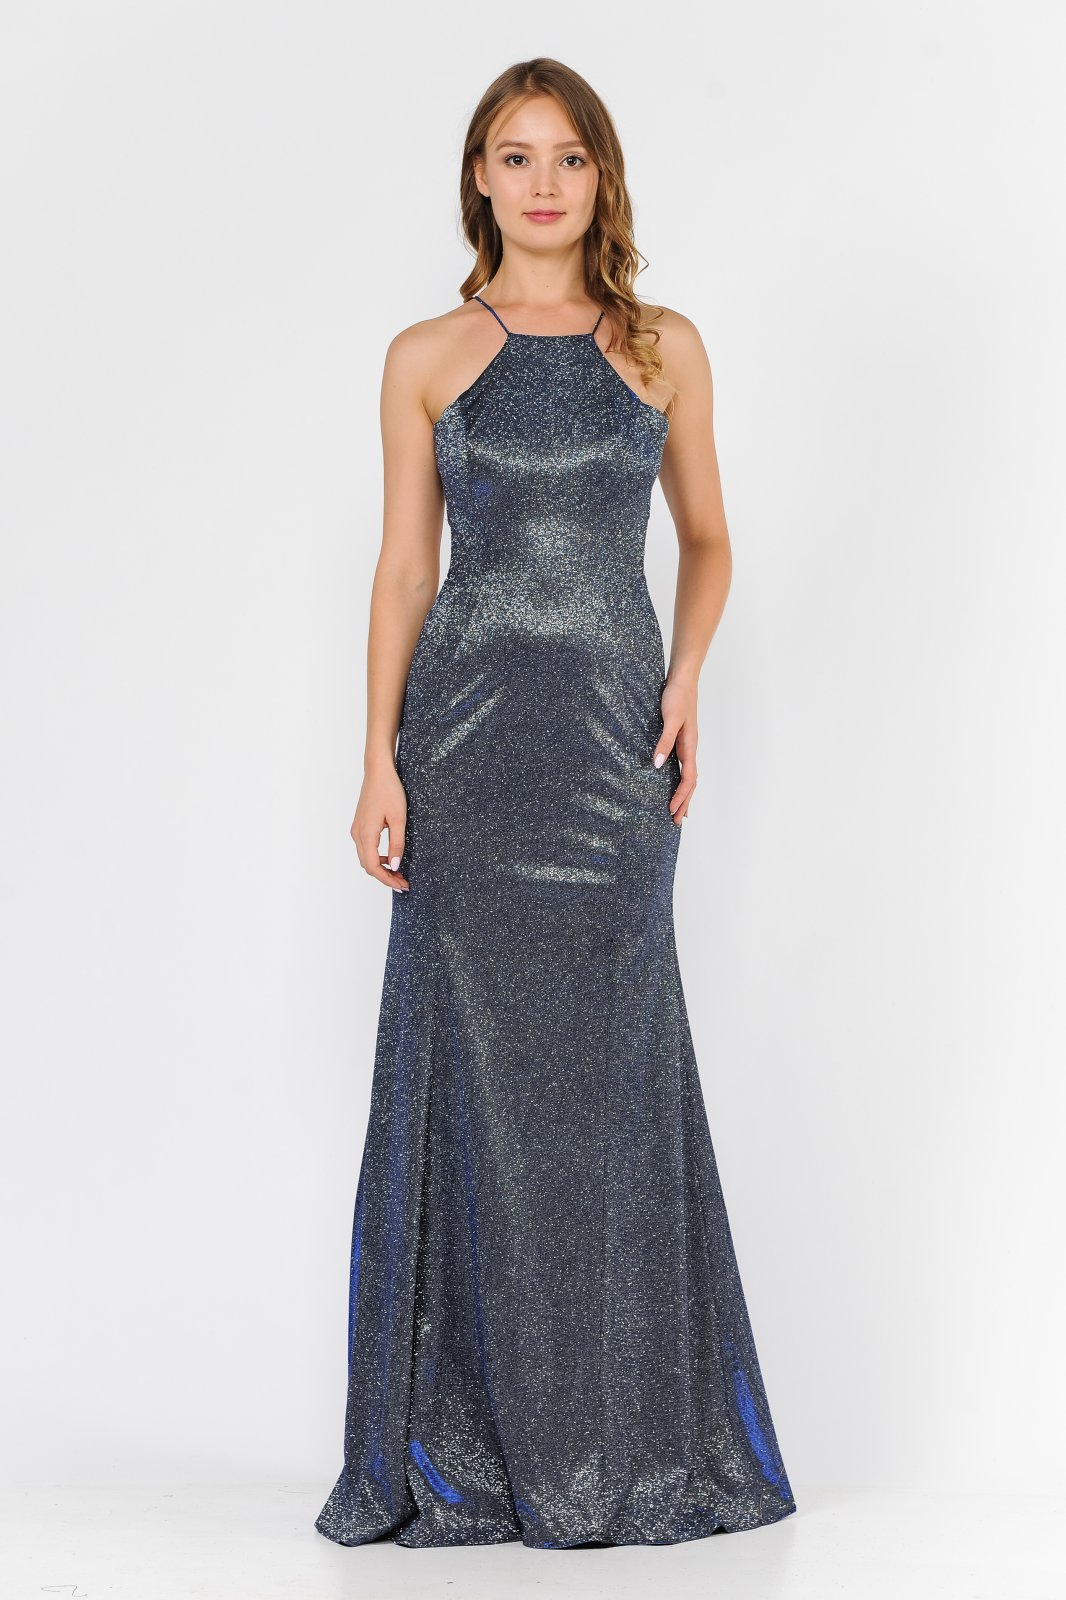 Long Royal metallic glitter dress with halter neck and sexy back cutout.